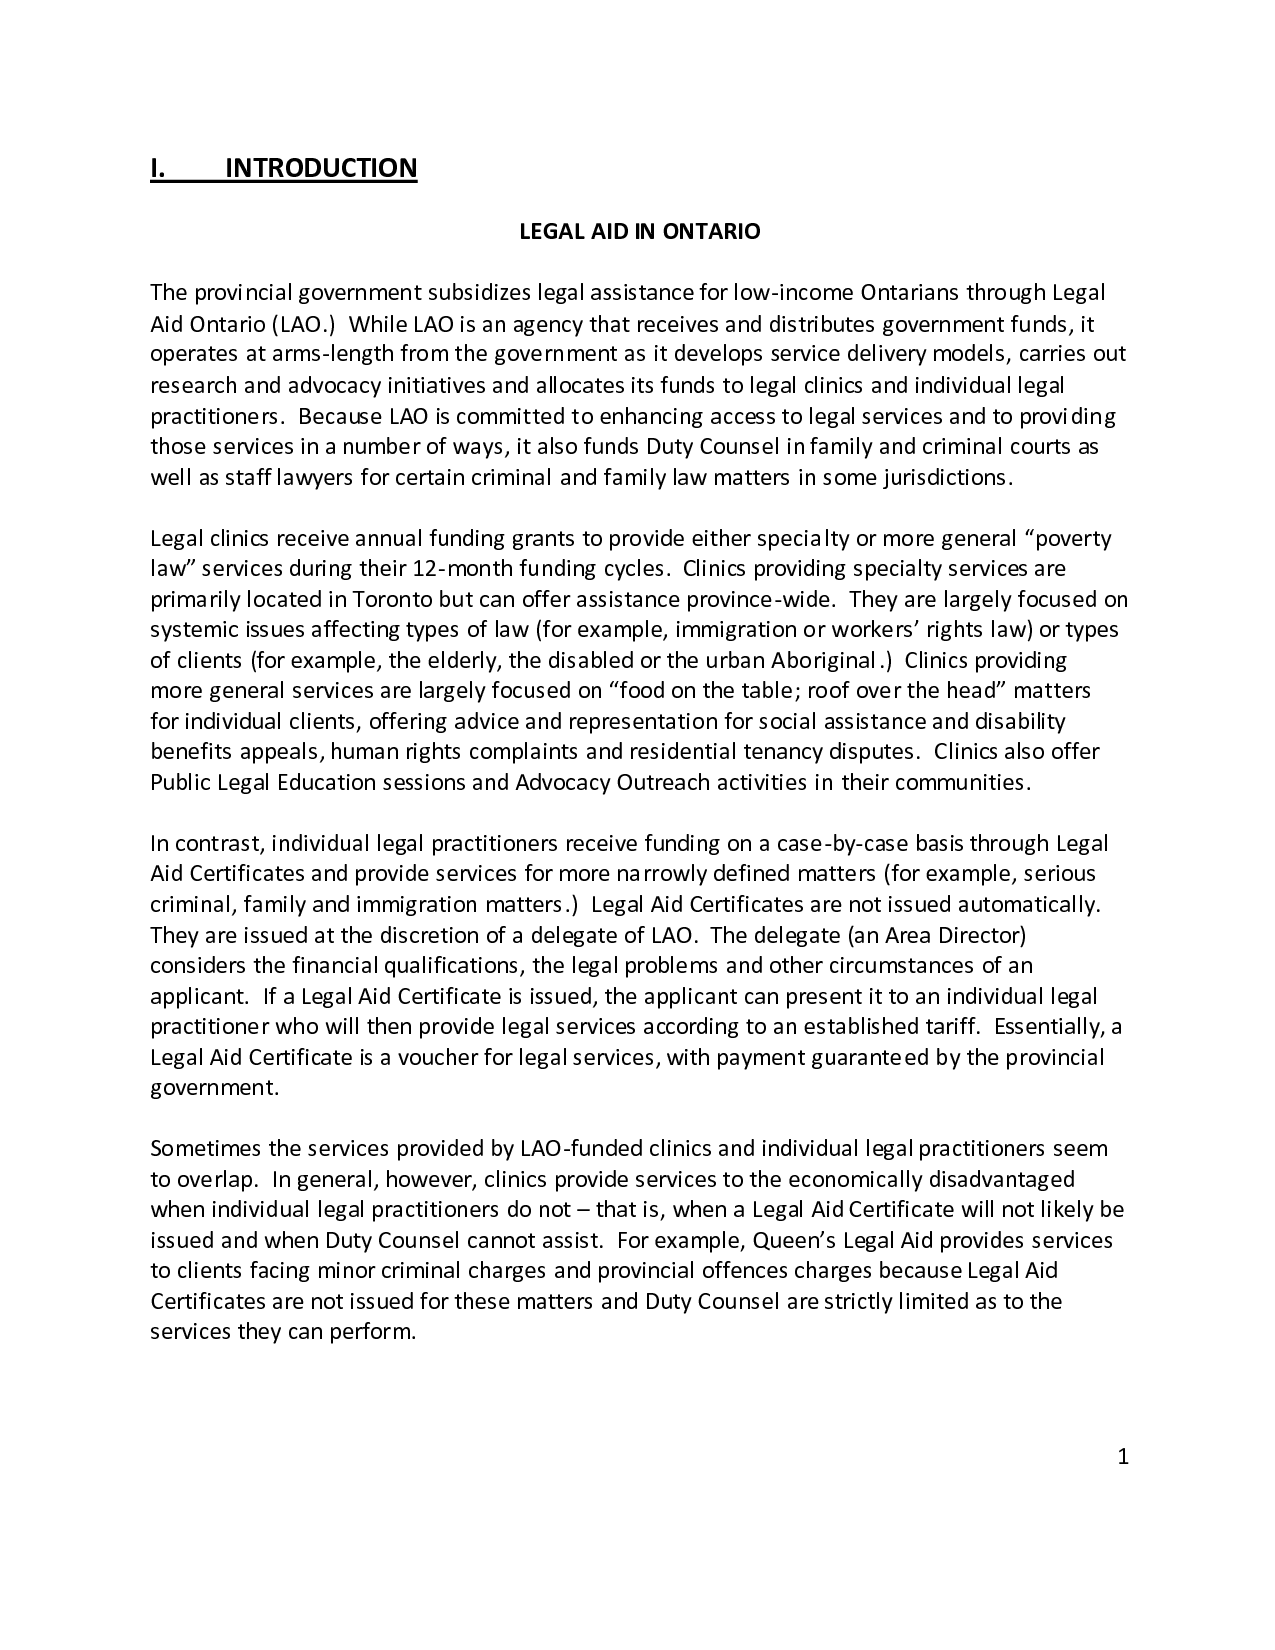 Apology essay to teacher essay on apology sample letters doc 565762 apology letter sample templatesusletter of apology apology letter sample templatesusletter of apology business letter sample altavistaventures Image collections